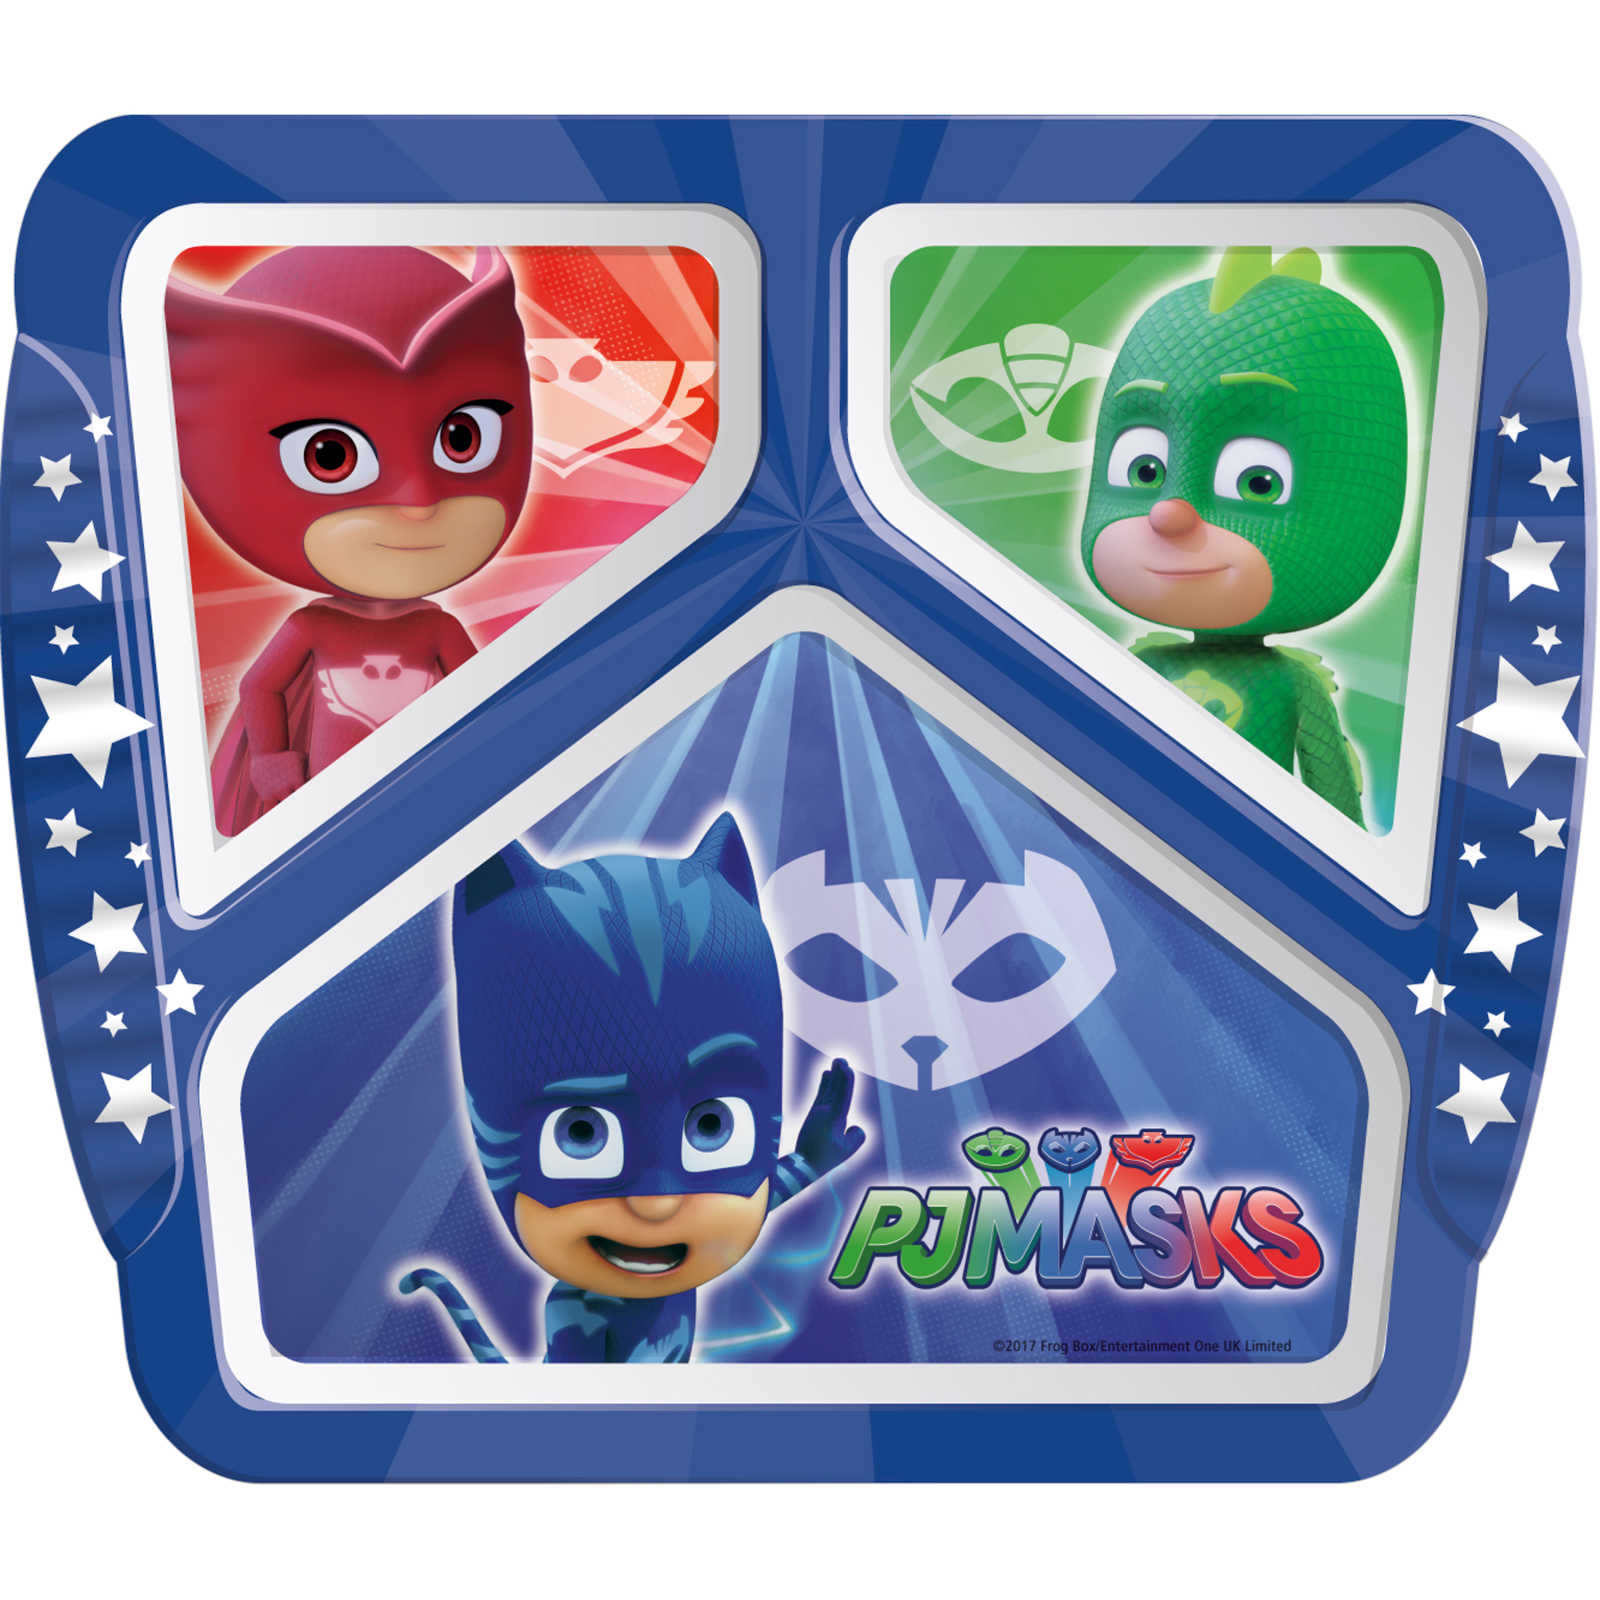 PJMA-0010-C PJ-Masks-Divided-Plates-zak-designs-02-hero